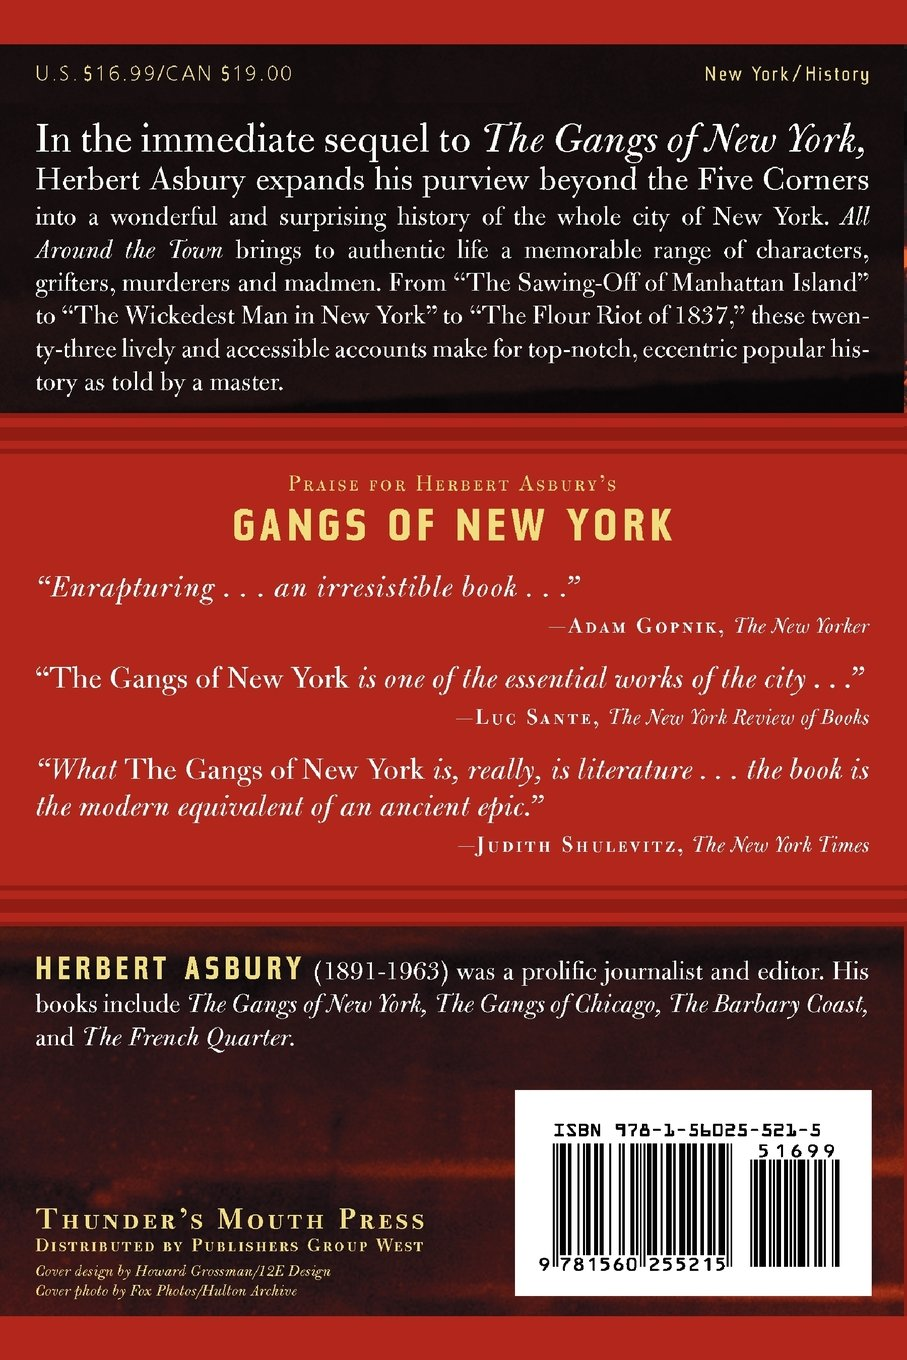 all around the town murder scandal riot and hem in old new all around the town murder scandal riot and hem in old new york adrenaline classics herbert asbury 9781560255215 com books